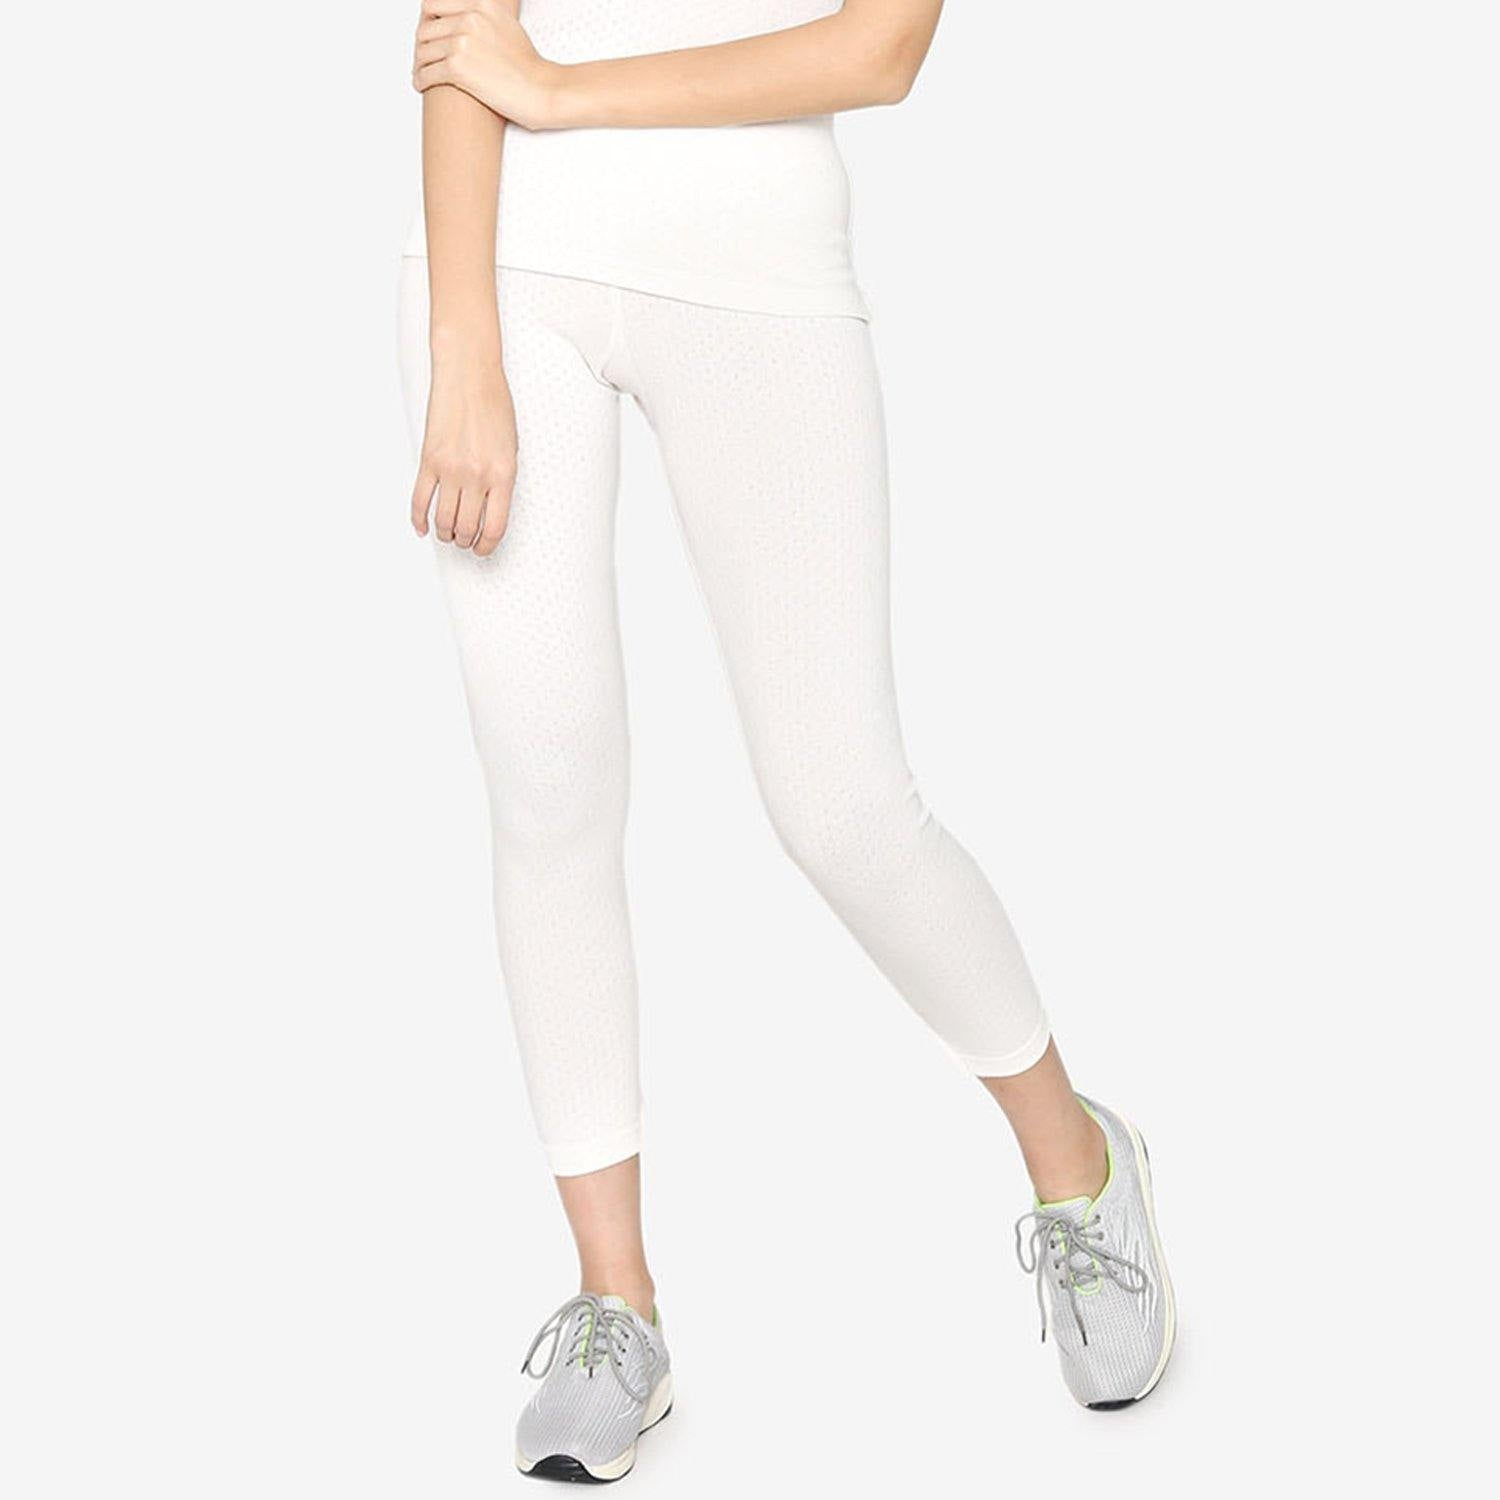 Vami Thermal Lower For Women In Off - White Color